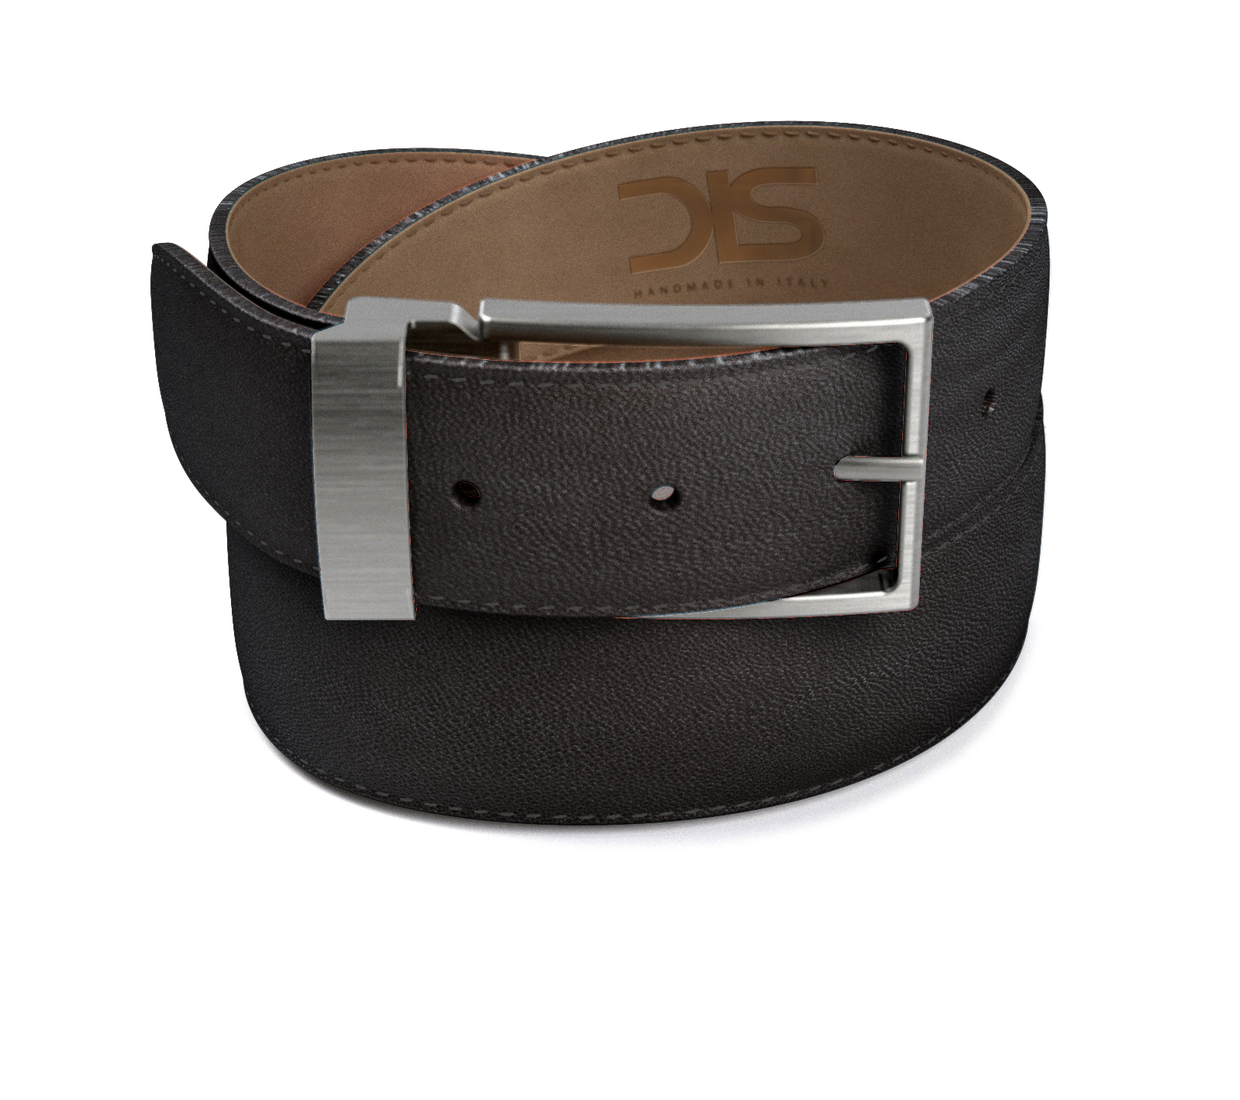 Black grain leather belt with opaque buckle